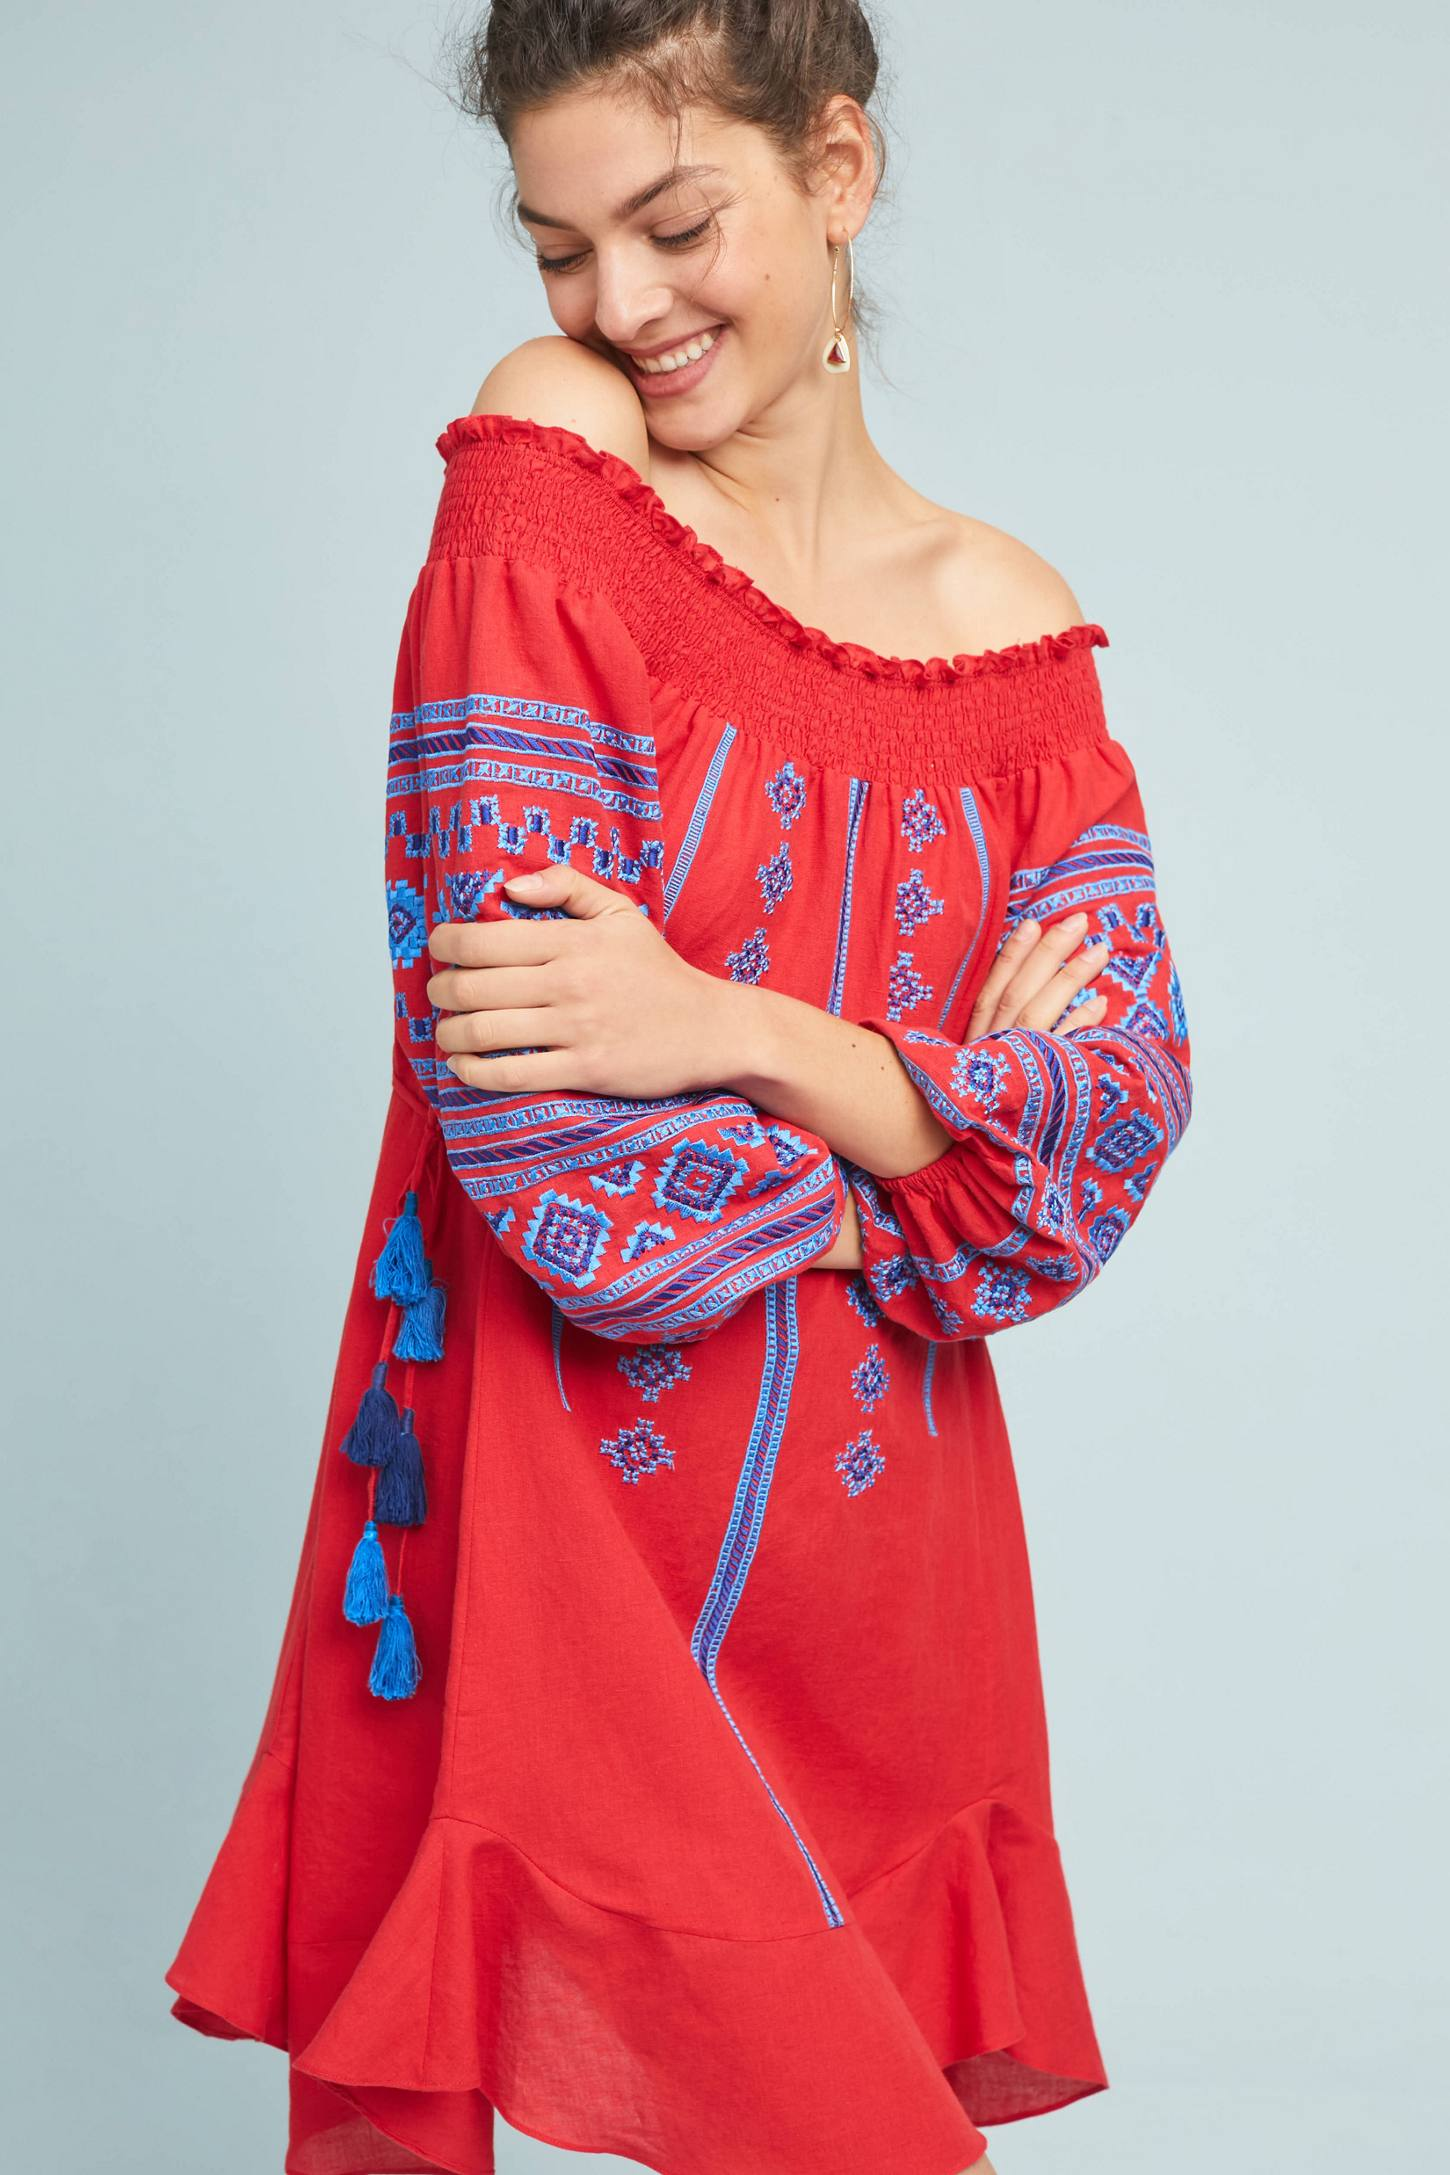 Red Off-the-Shoulder Peasant Dress Bohemian Blue Embroidered